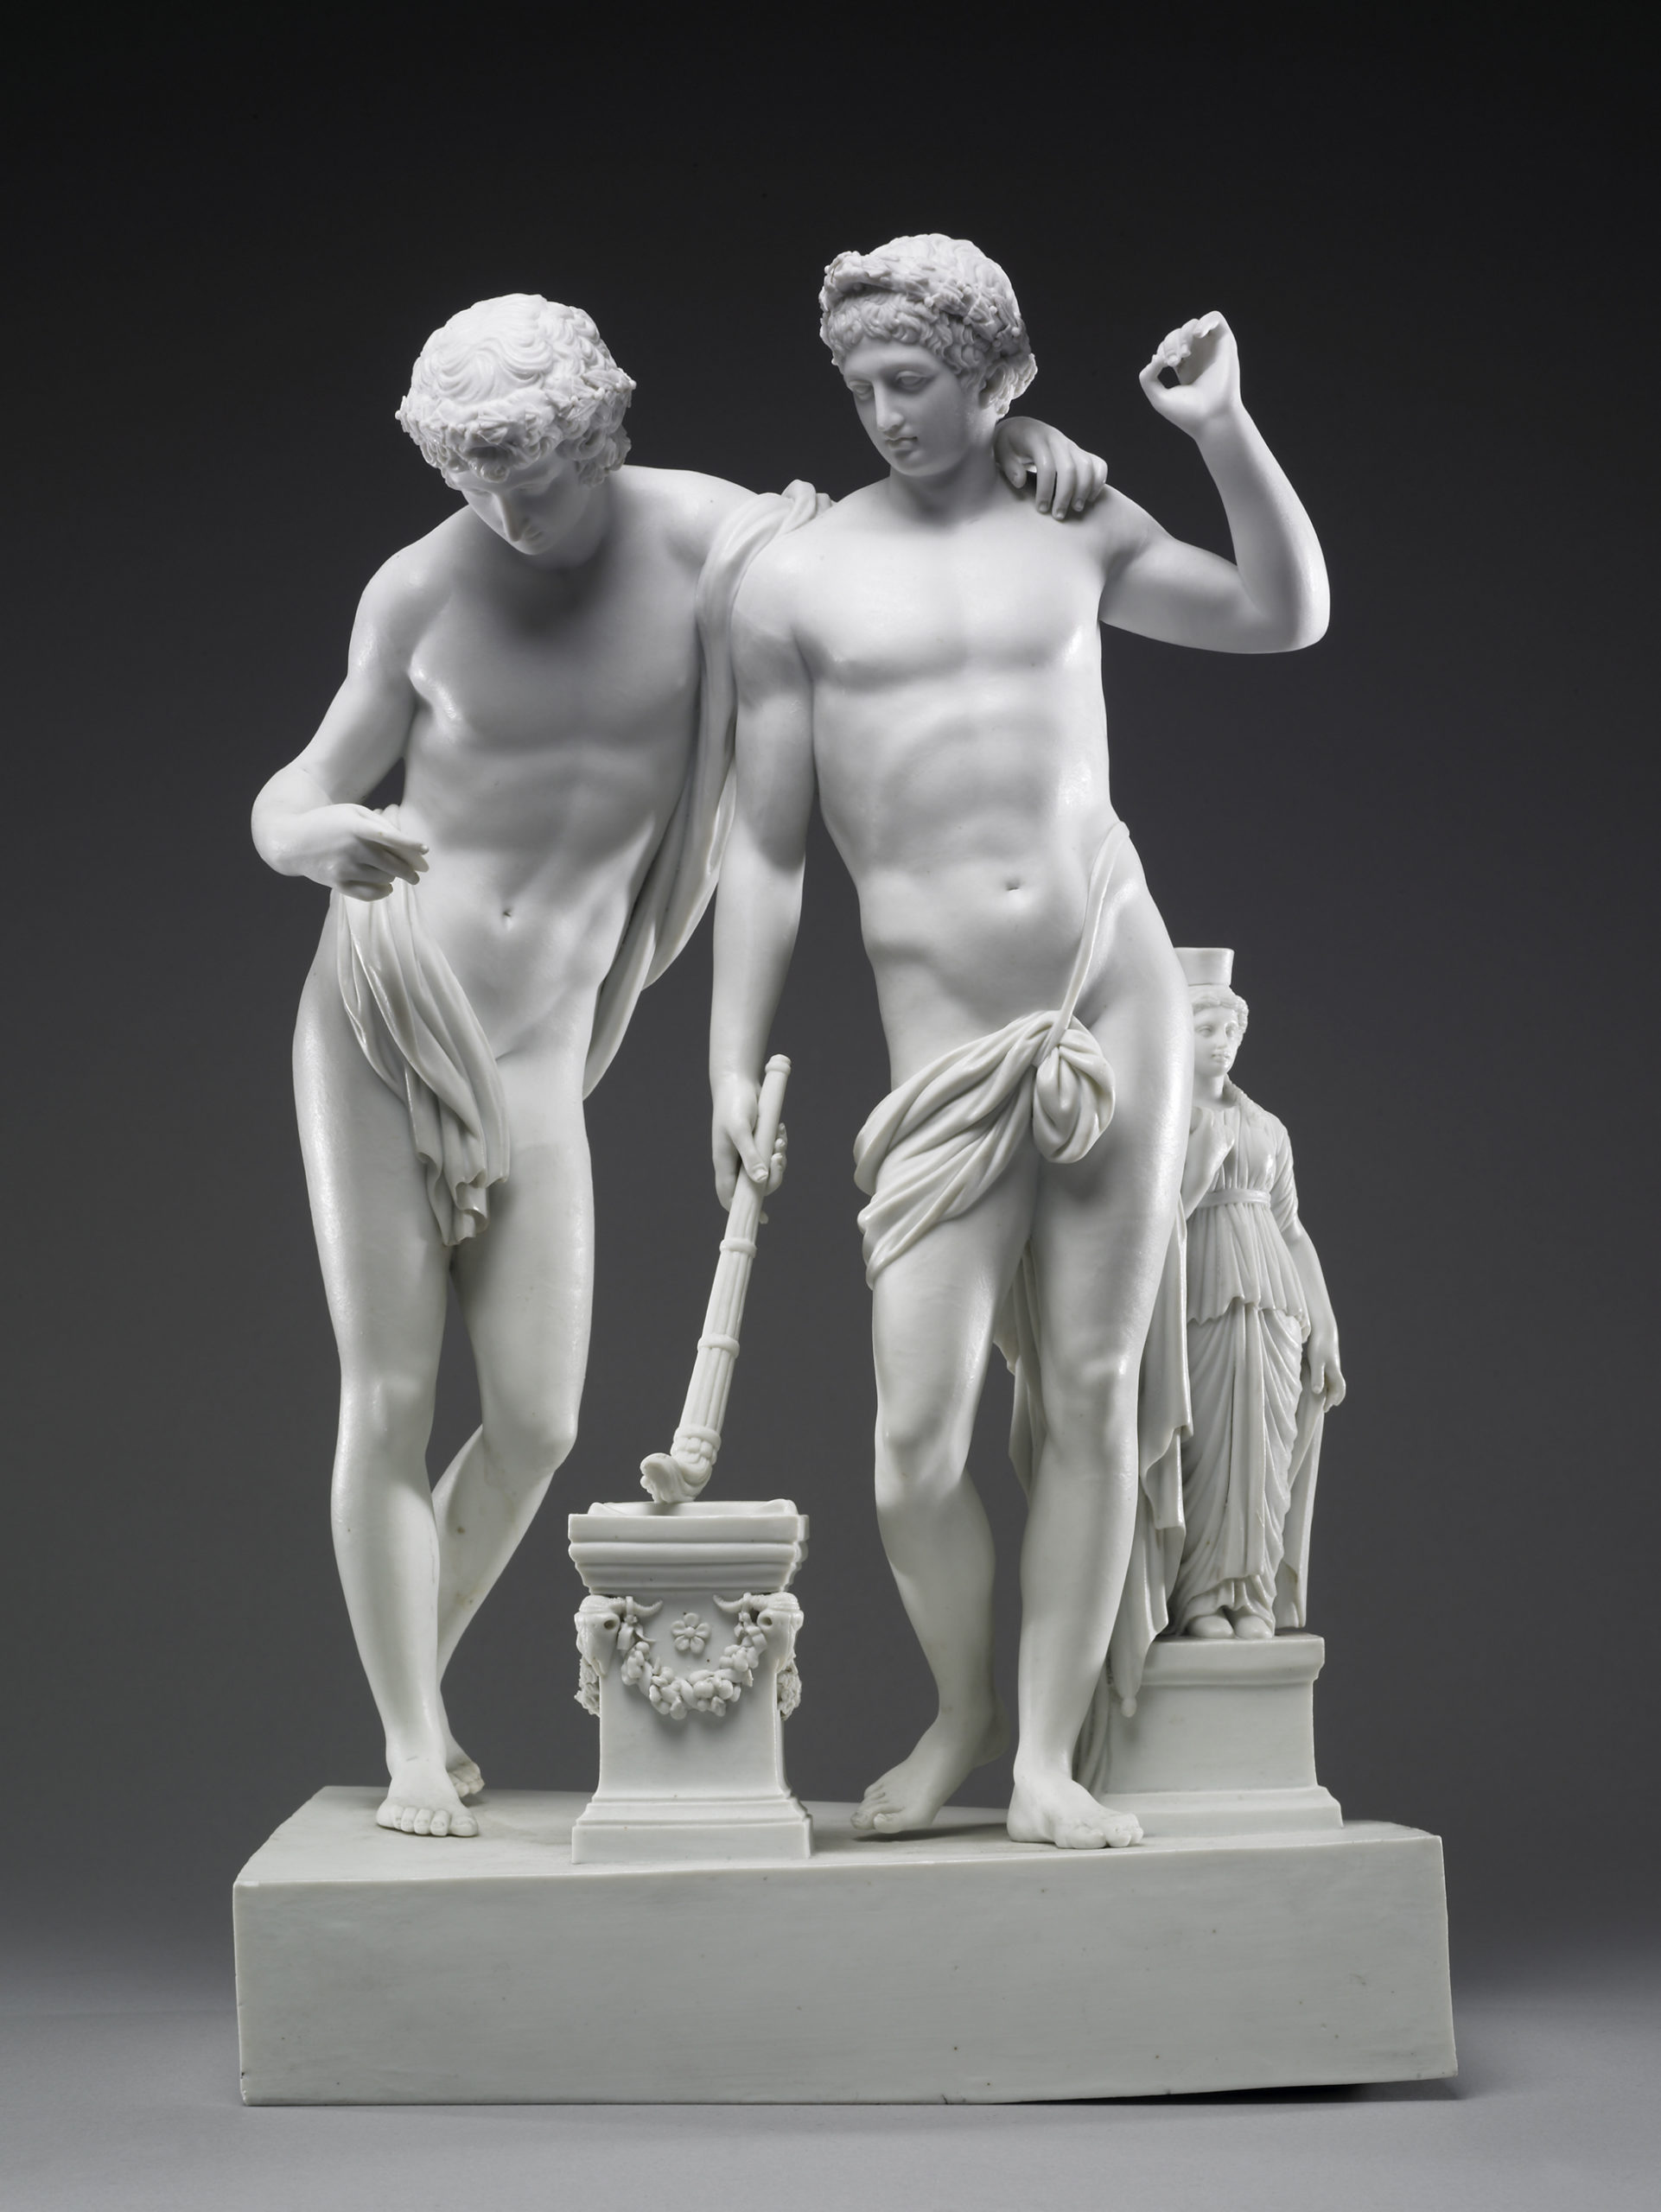 A white porcelain sculpture of the figures of Castor and Pollux. Castor (right), with his left hand raised, holds a torch against a plinth with his right hand. Castor leans casually on Pollux's right shoulder.